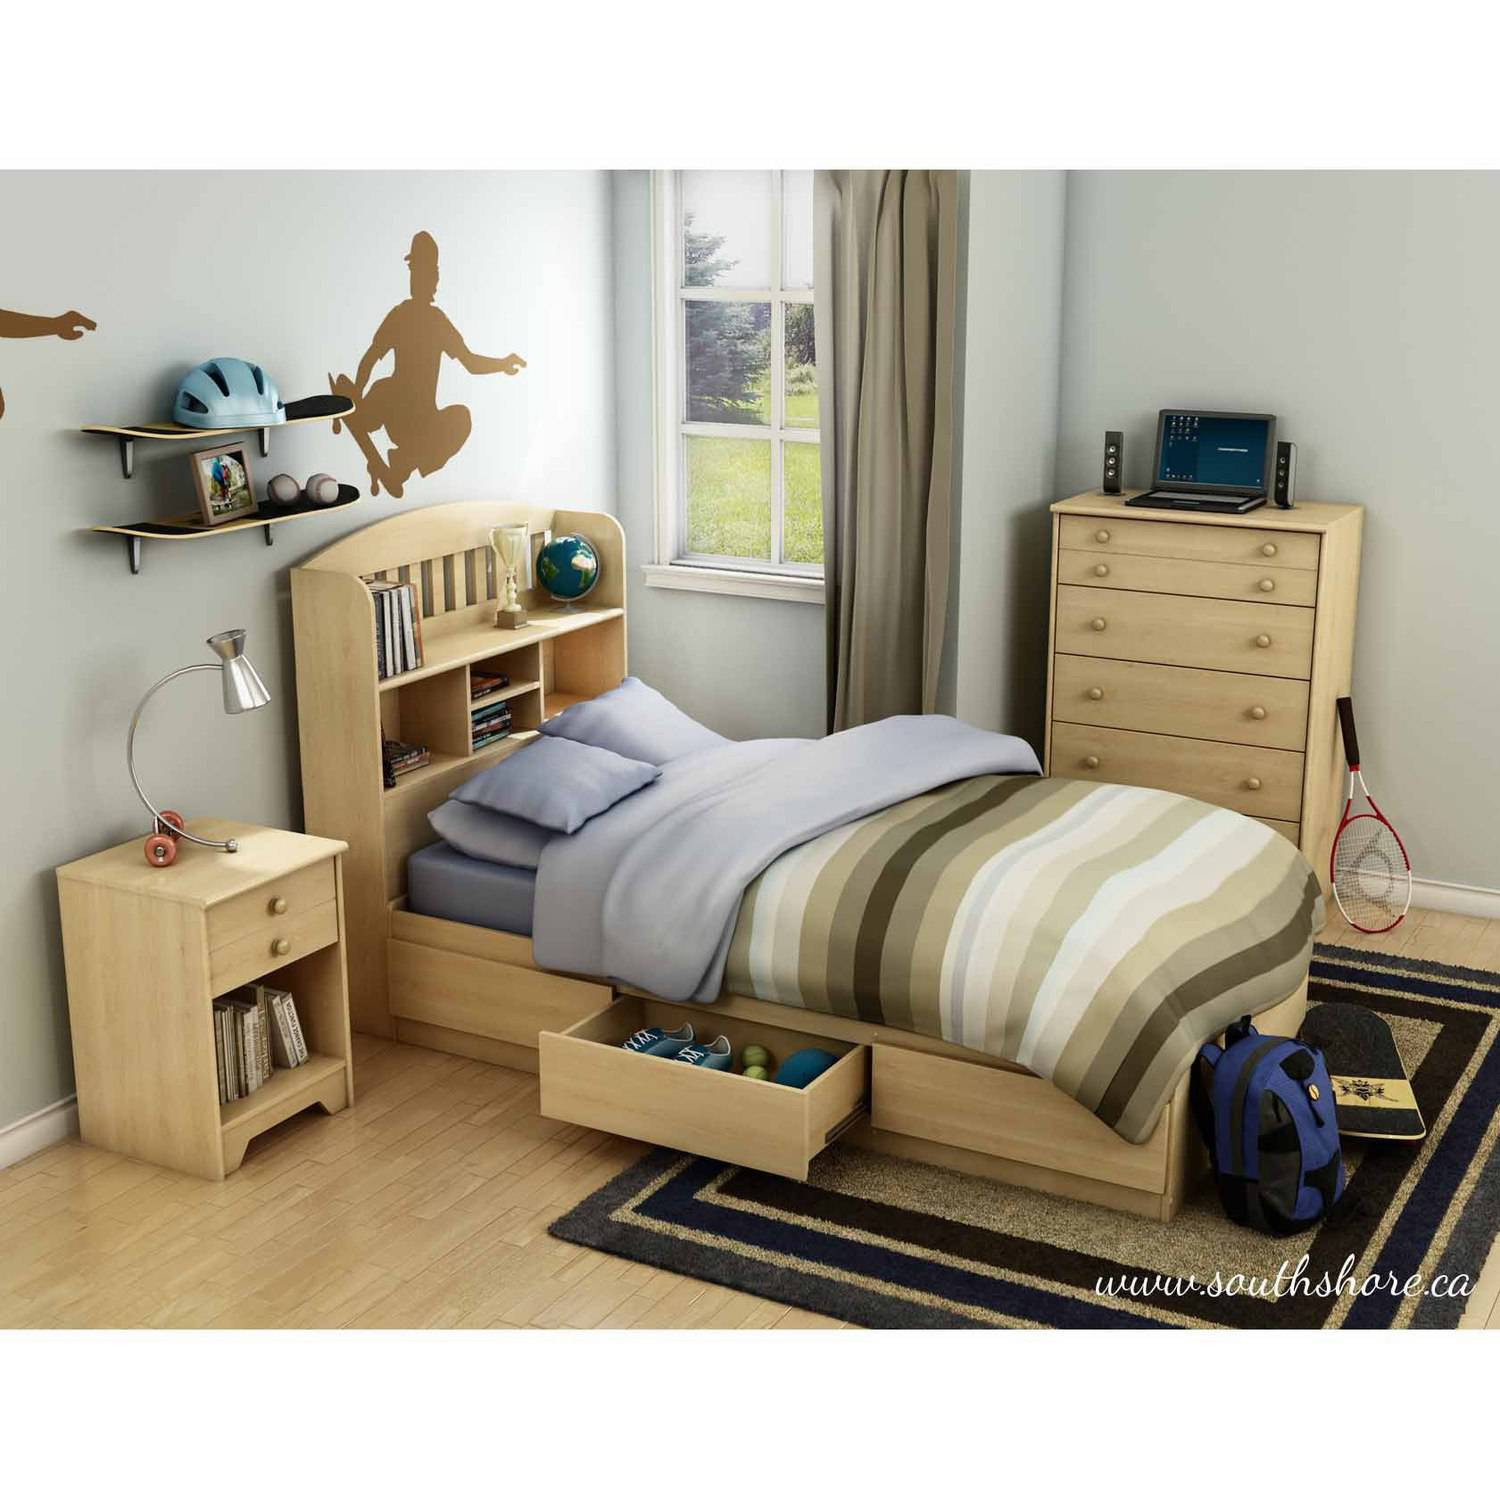 Best ideas about Walmart Bedroom Sets . Save or Pin South Shore Popular Kids Bedroom Furniture Collection Now.